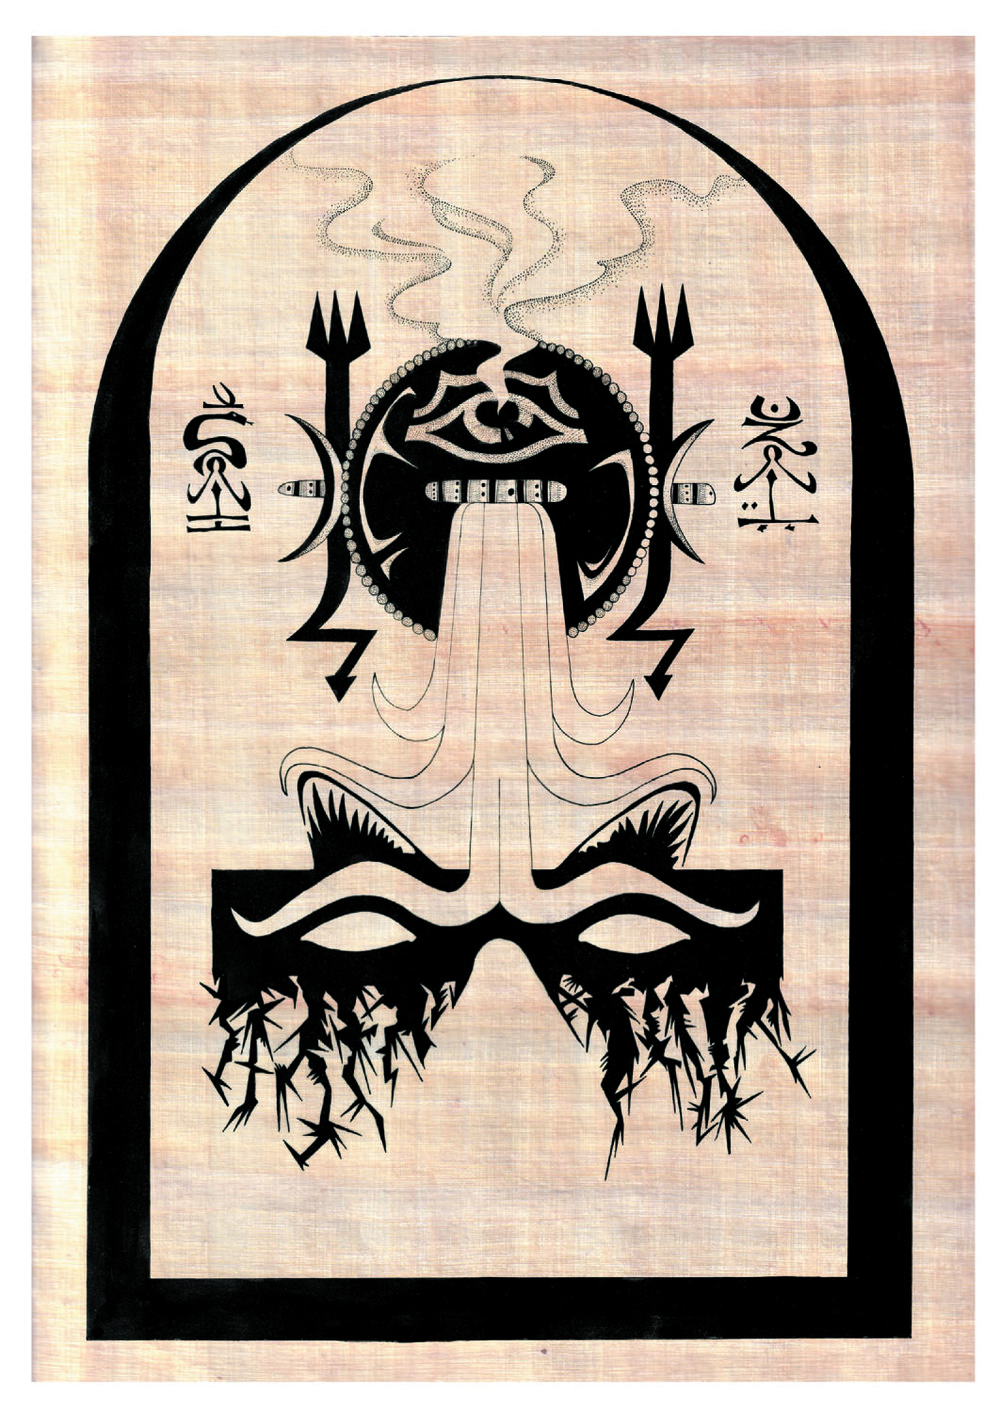 One of five plates that appear in the Totemic Invocation of the Shadow Selves by Jack Macbeth 2002. This image relates to magical operations of the Black Mirror and the masks of Tezcatlipoca as a force for rending perception (particularly of the self). Note the central motif of the circular black mirror, which would come to be associated with the black disc of the eclipsed sun. Black Mirror features prominently in the Ulysses Black Initiative, as do black circles. This Stelle was created around 1999.